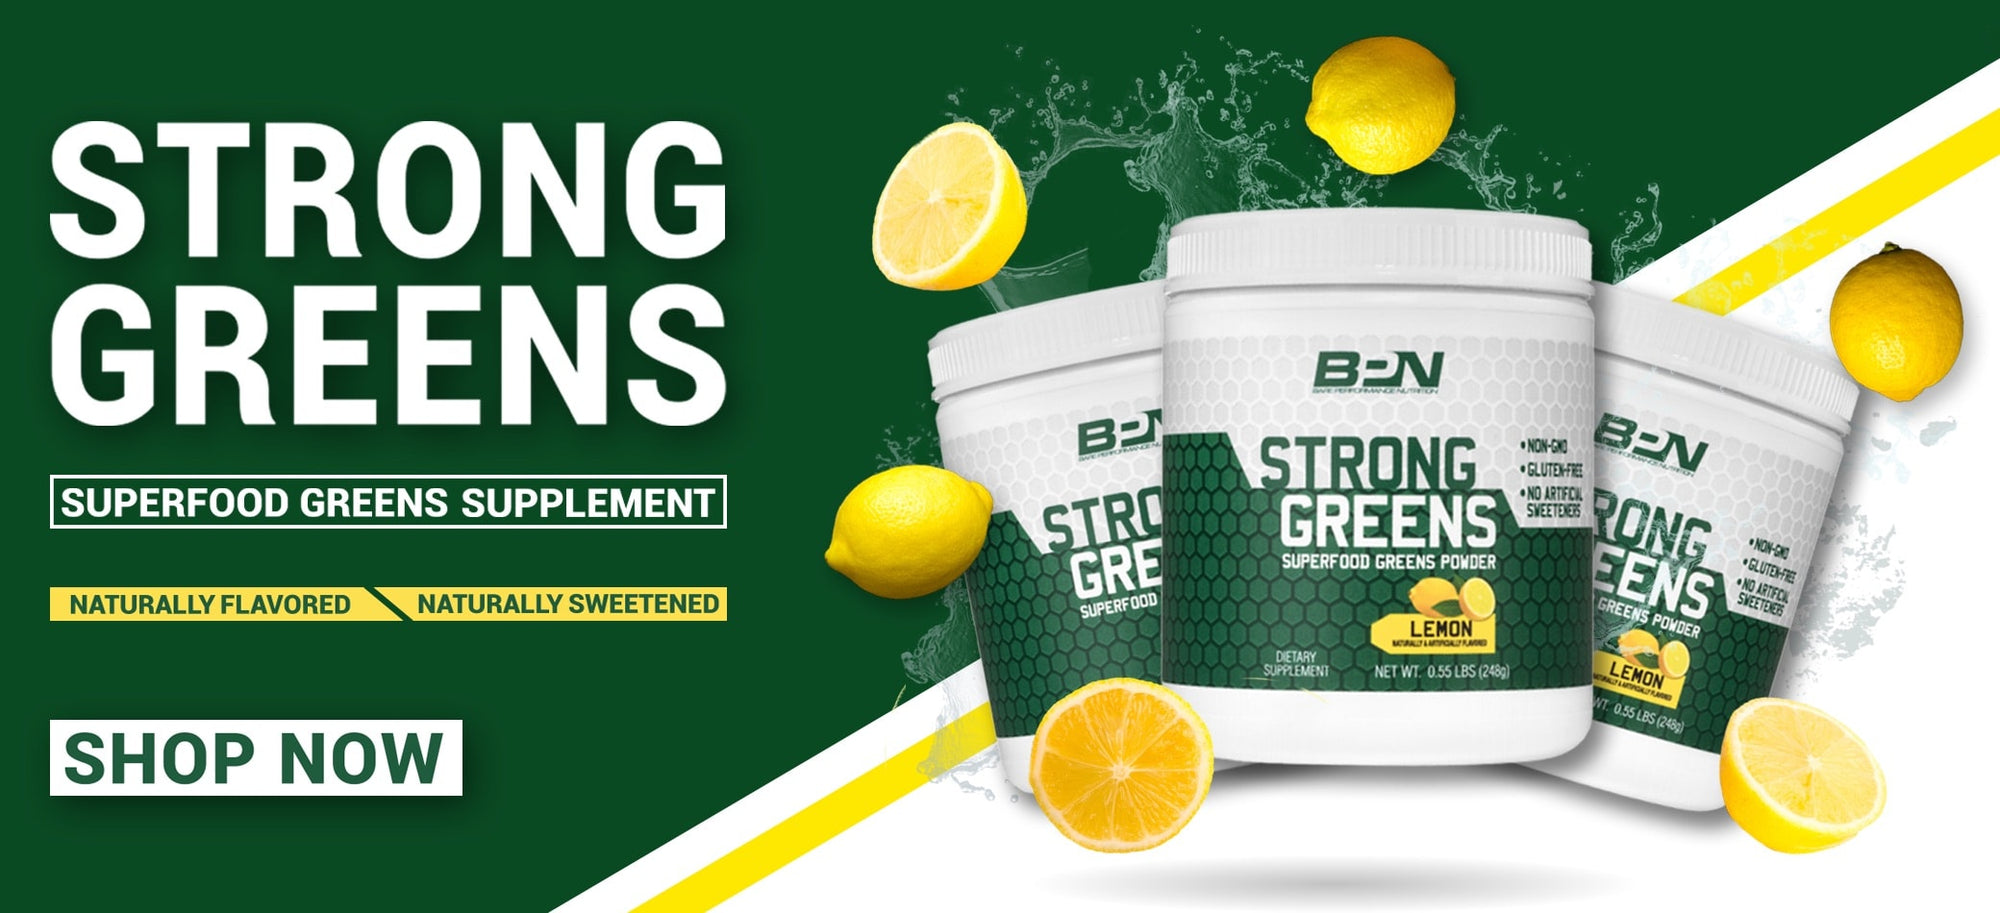 BPN Super Greens Superfood Greens Supplement